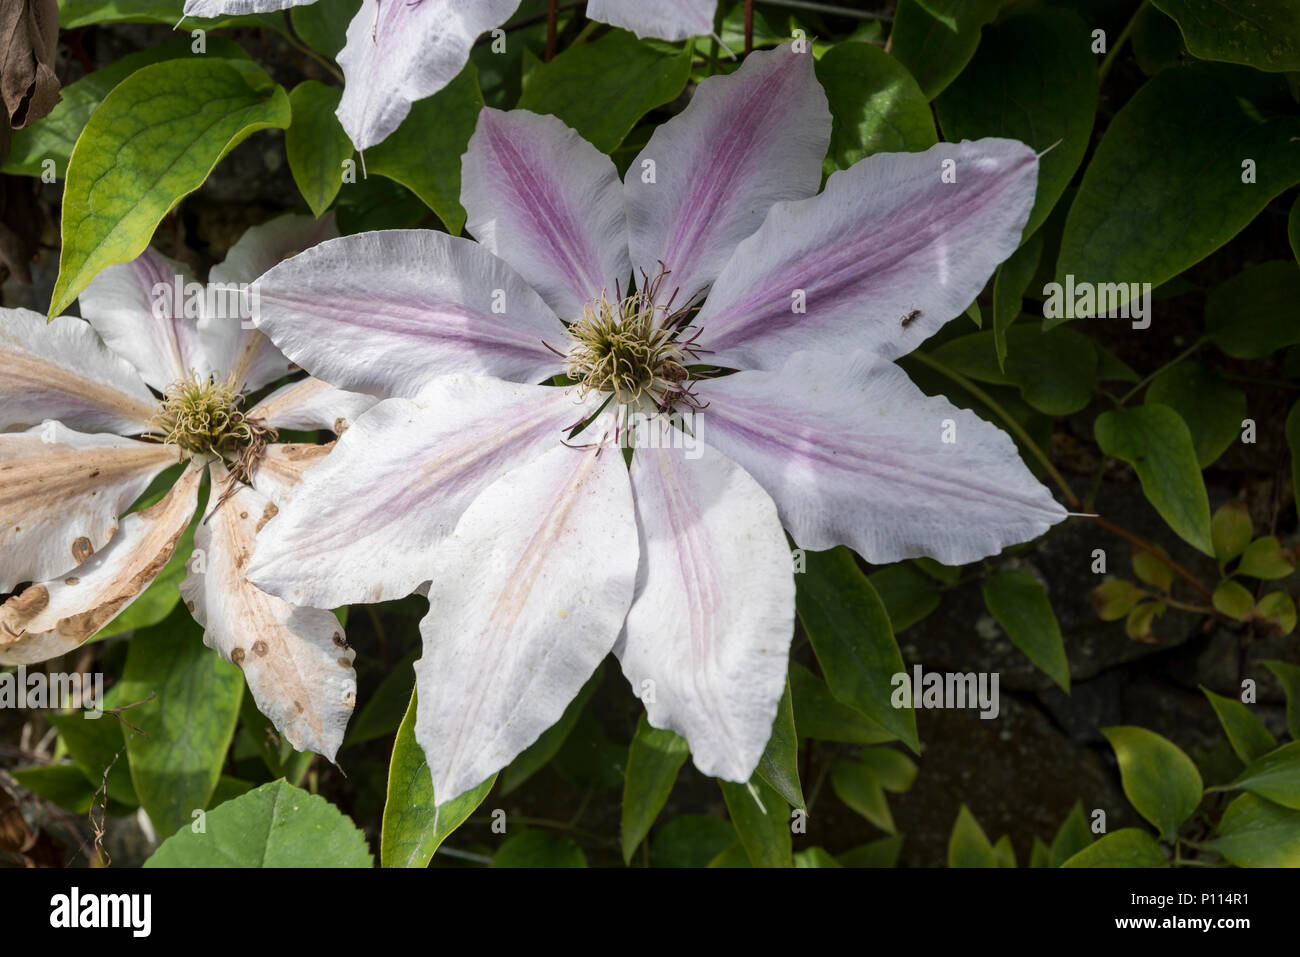 Clematis white flowers ranunculaceae stock photo 207164805 alamy clematis white flowers ranunculaceae mightylinksfo